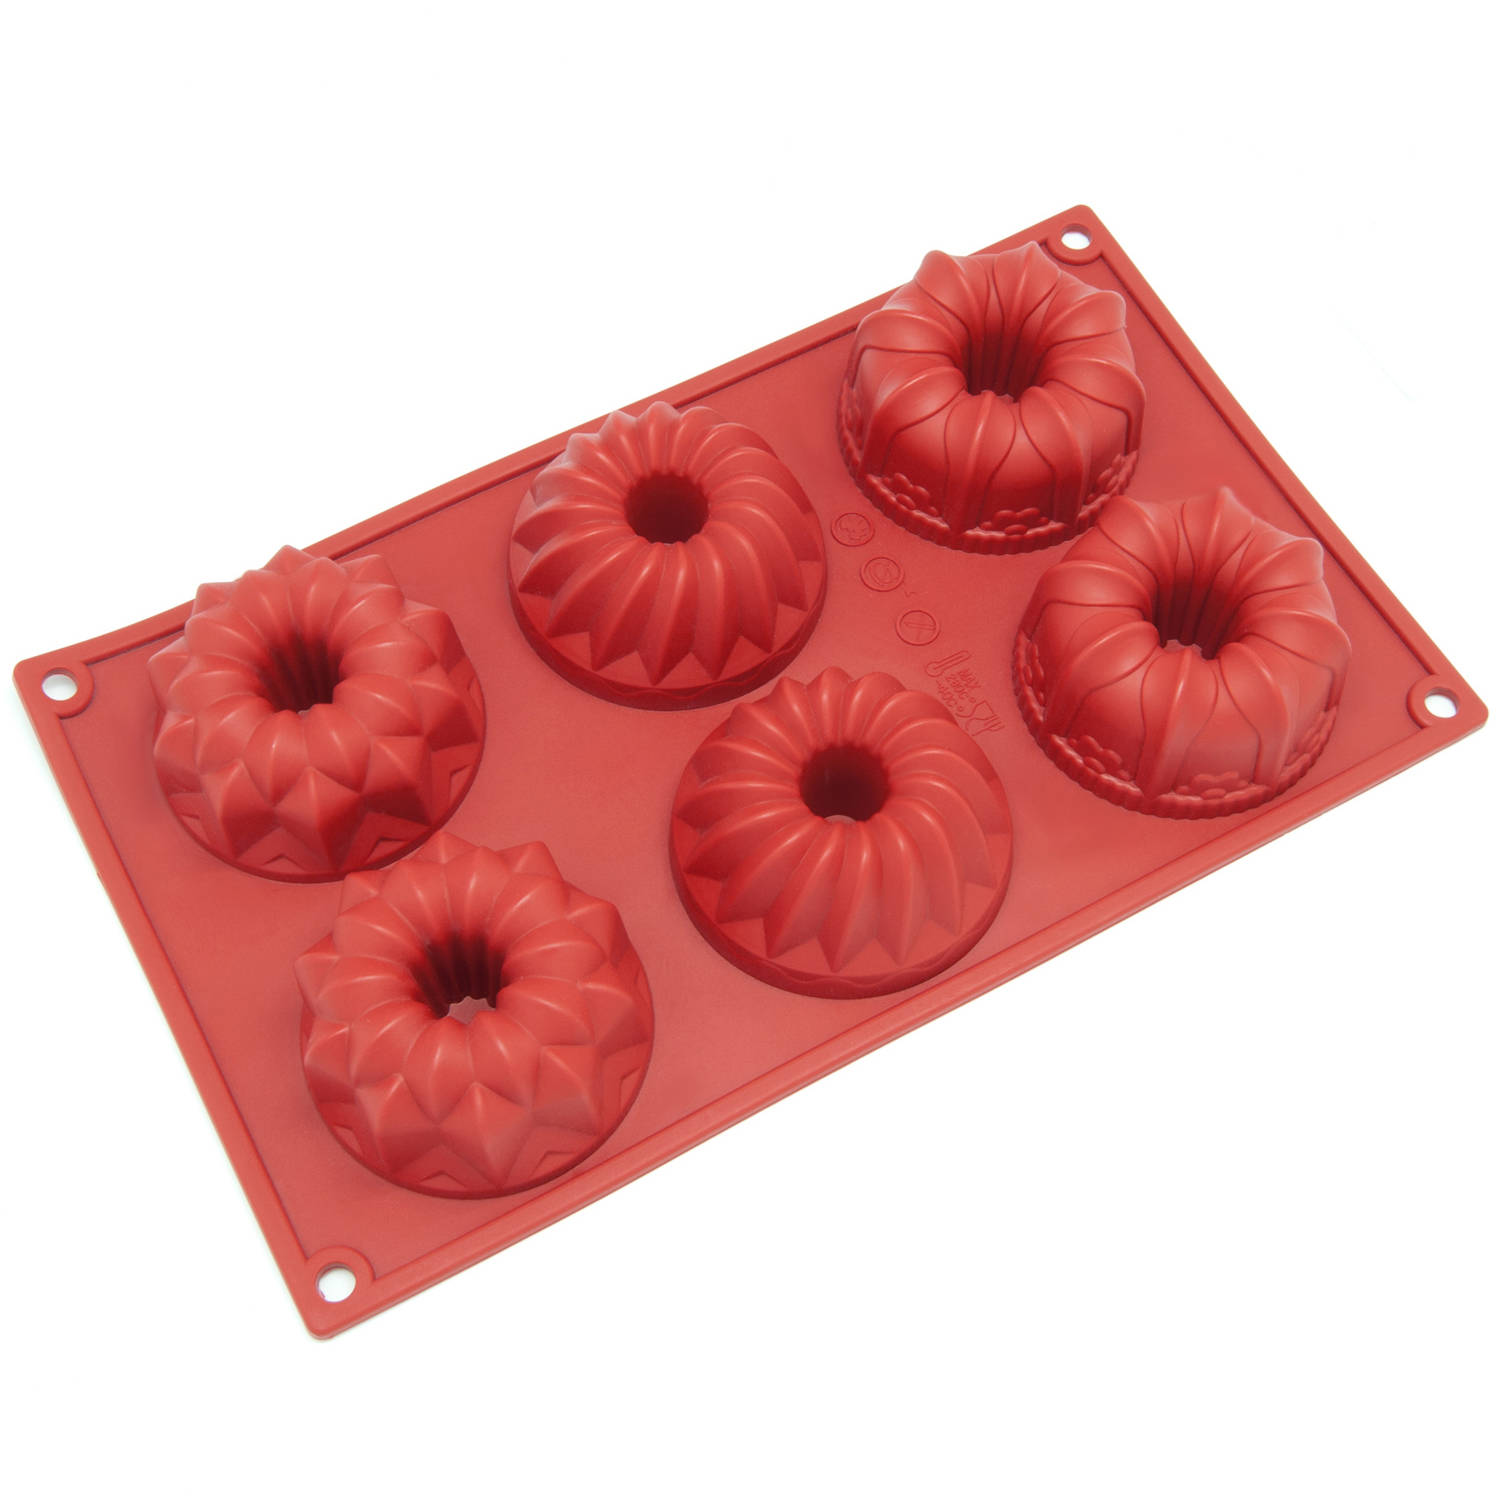 Freshware 6-Cavity Fancy Bundt Cake Silicone Mold for Muffin, Soap, Cupcake, Pudding and Jello, SL-119RD